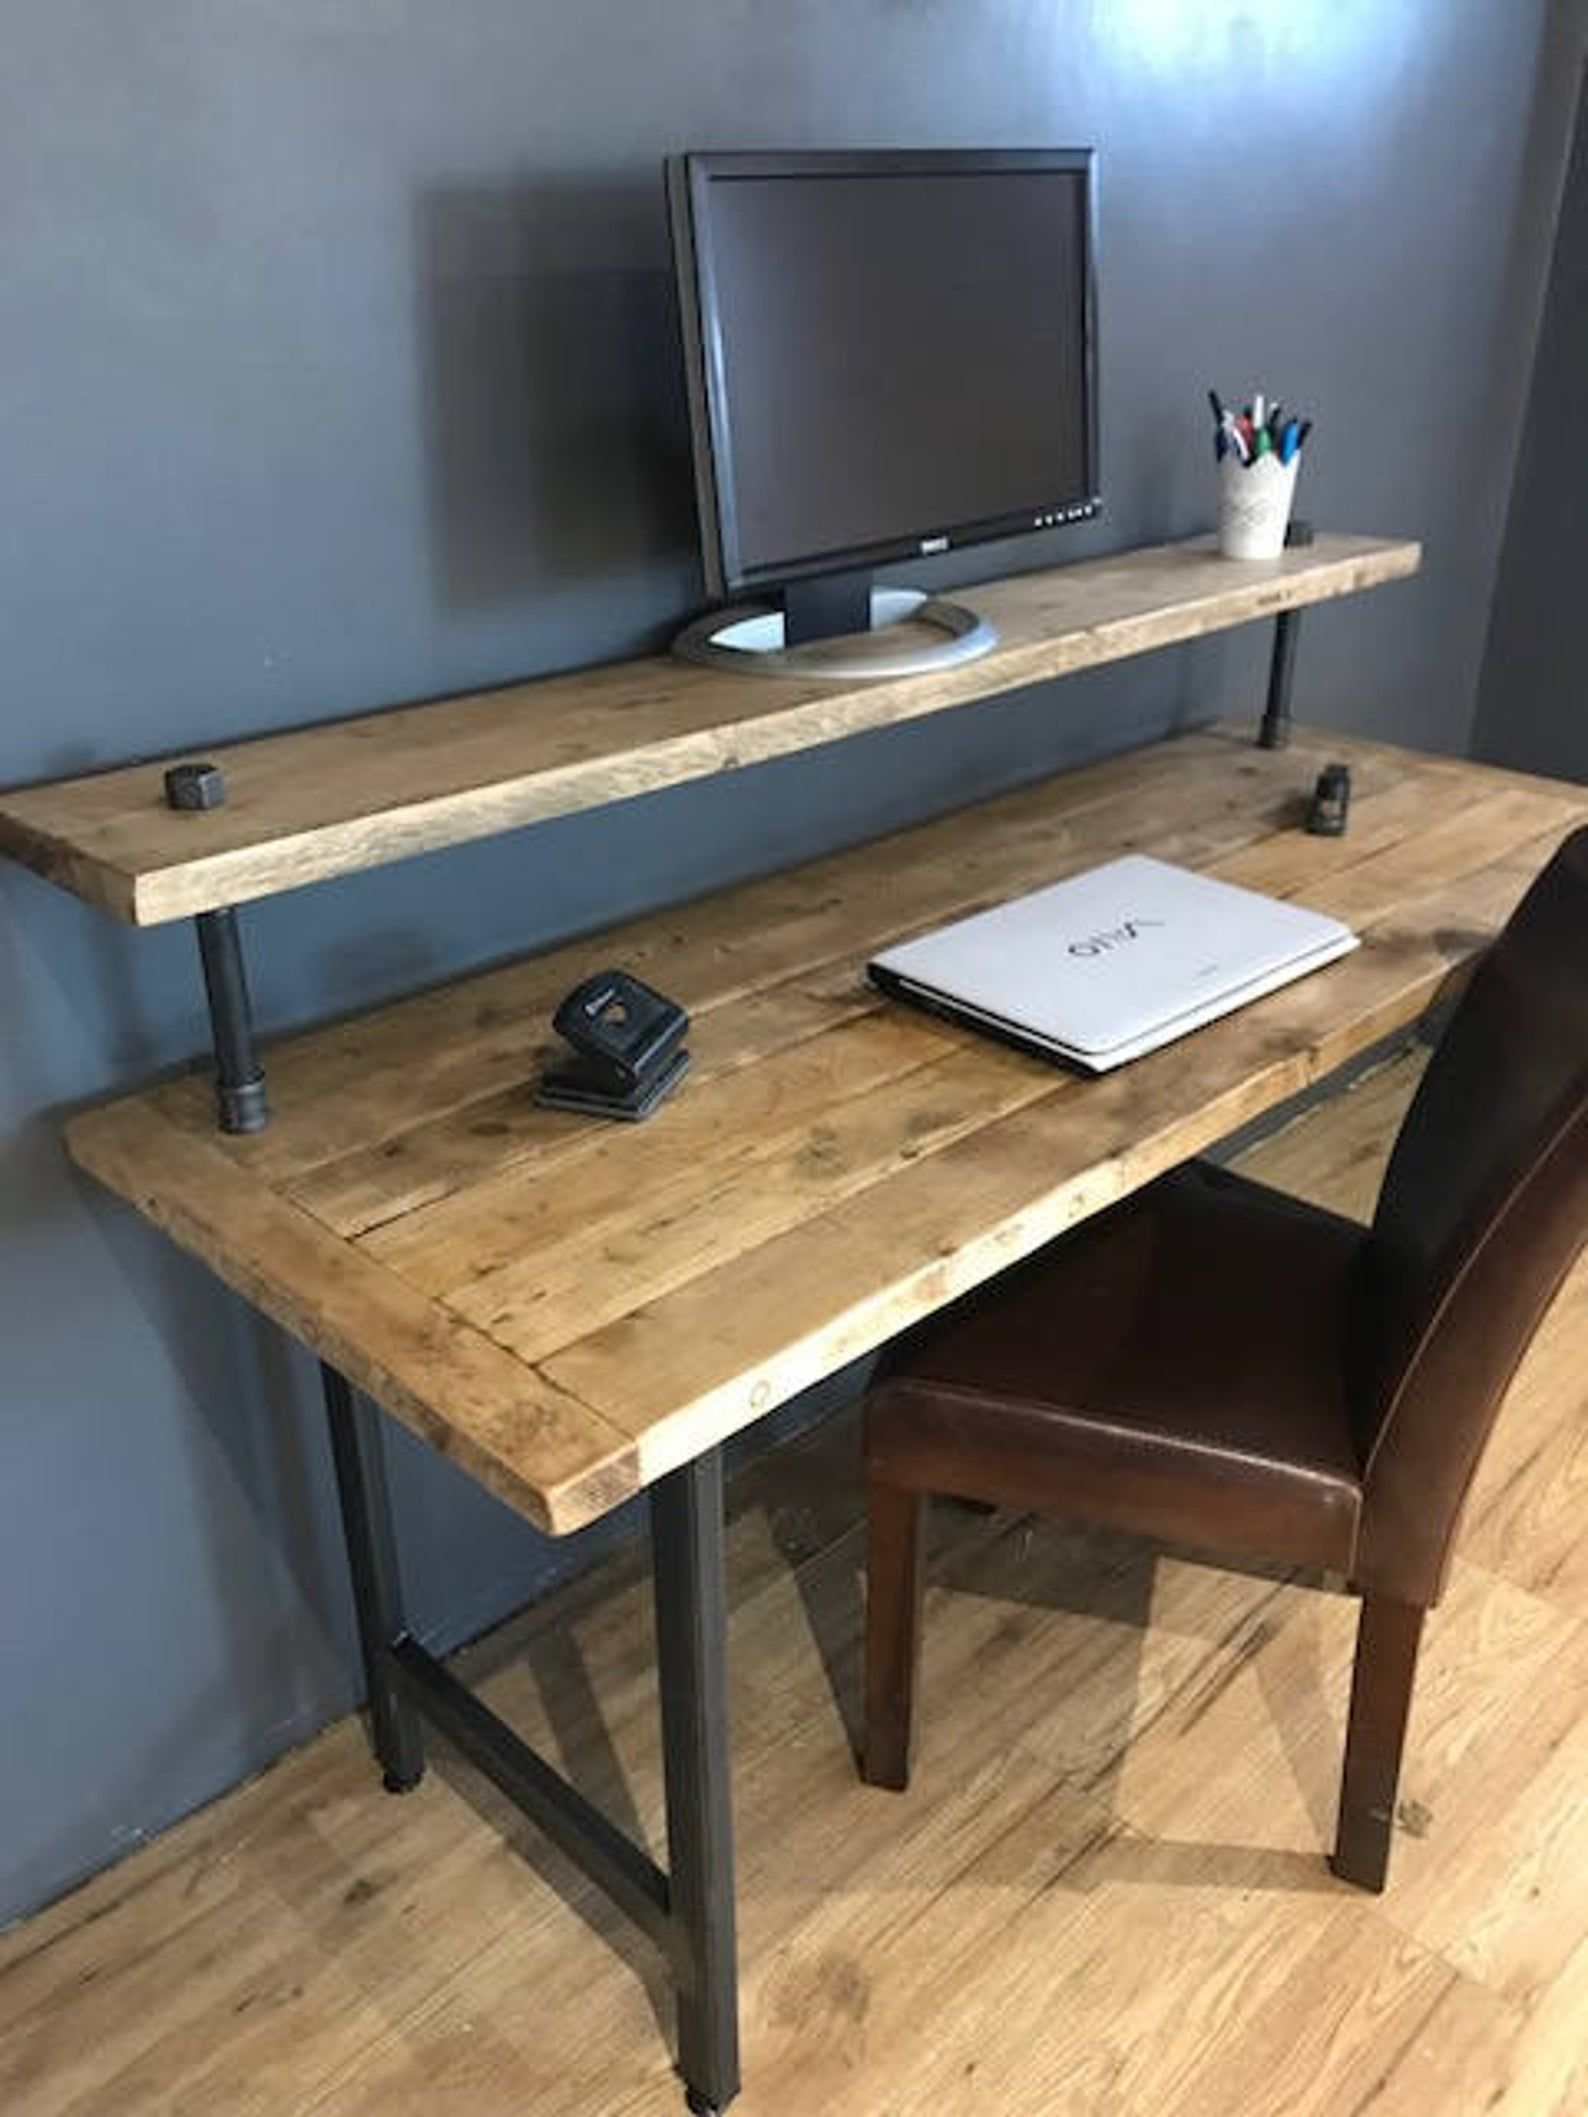 Reclaimed Wood Pc Table With Monitor Stand Etsy In 2020 Home Office Setup Home Diy Desk Plans